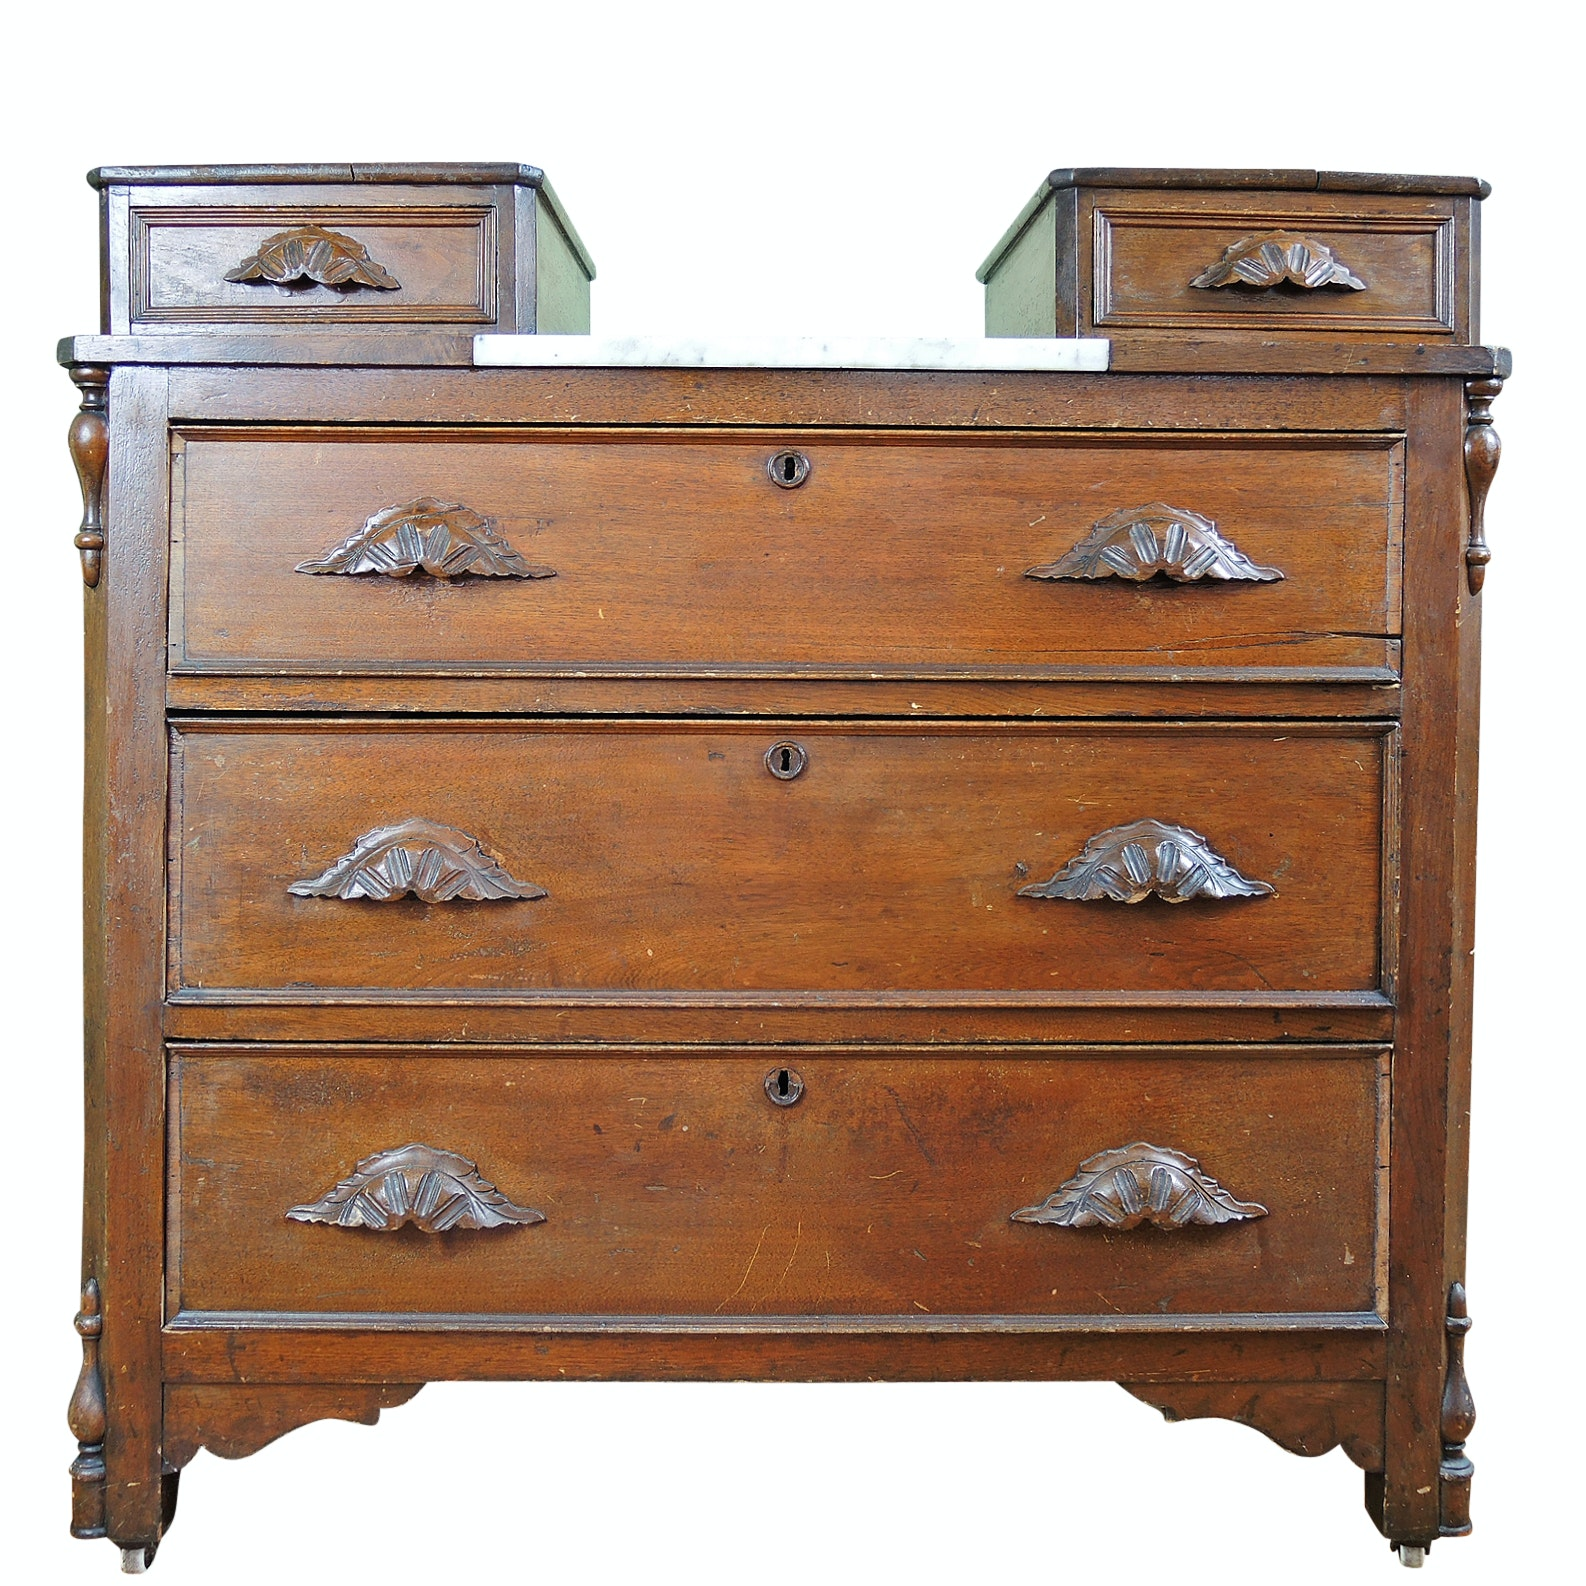 Late 19th Century Victorian Dresser with Glove Drawers, Marble Insert